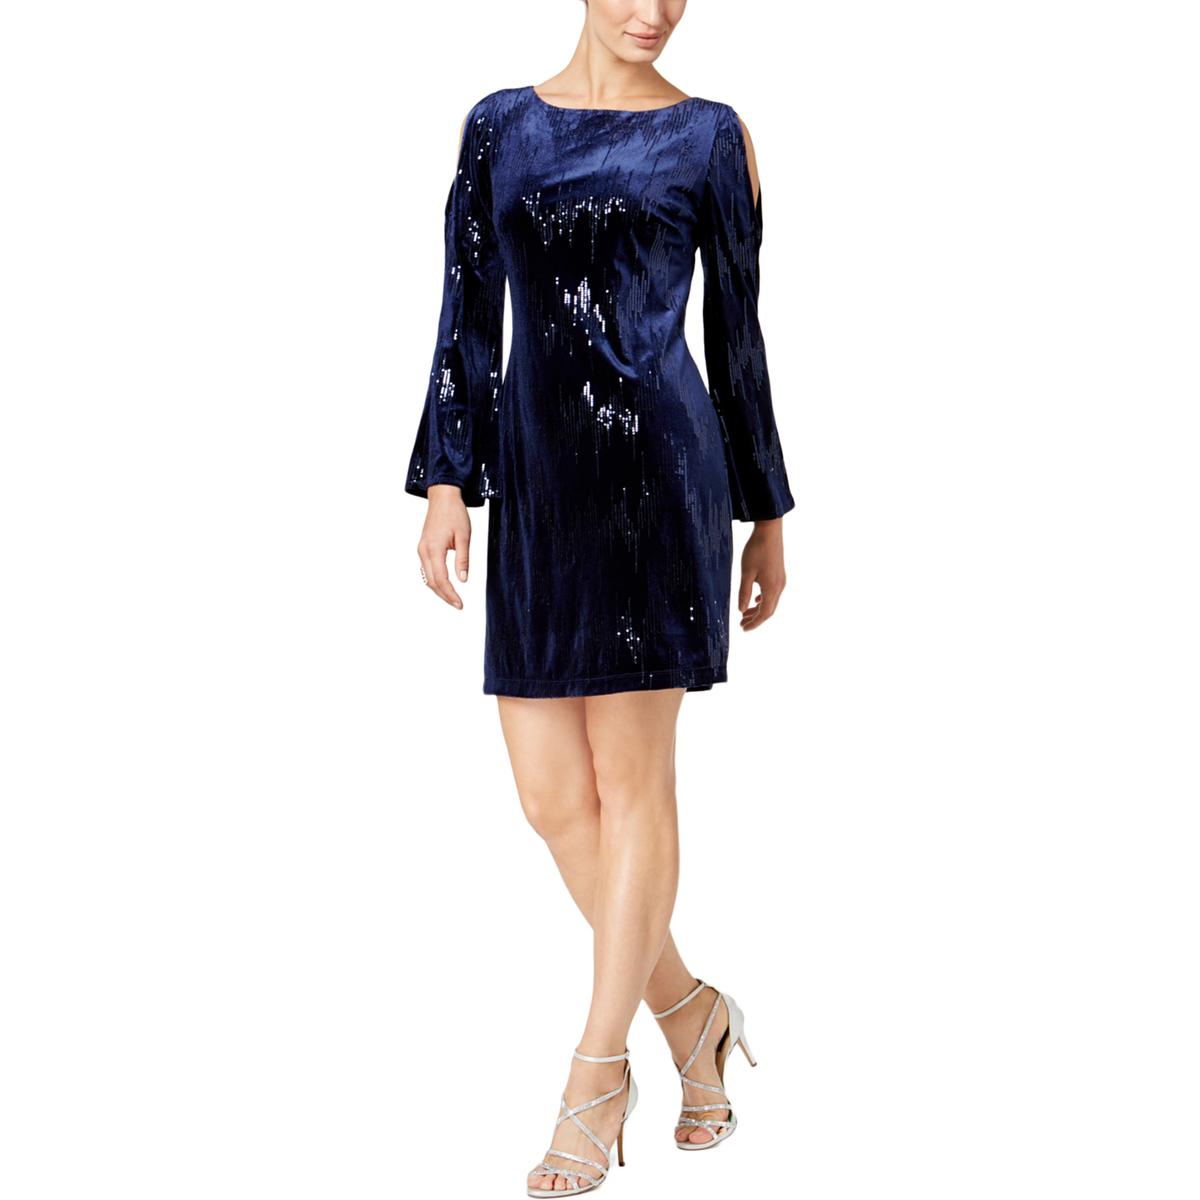 fd15750f91a62 Details about Jessica Howard Womens Navy Sequined Velvet Cocktail Dress 12  BHFO 6323